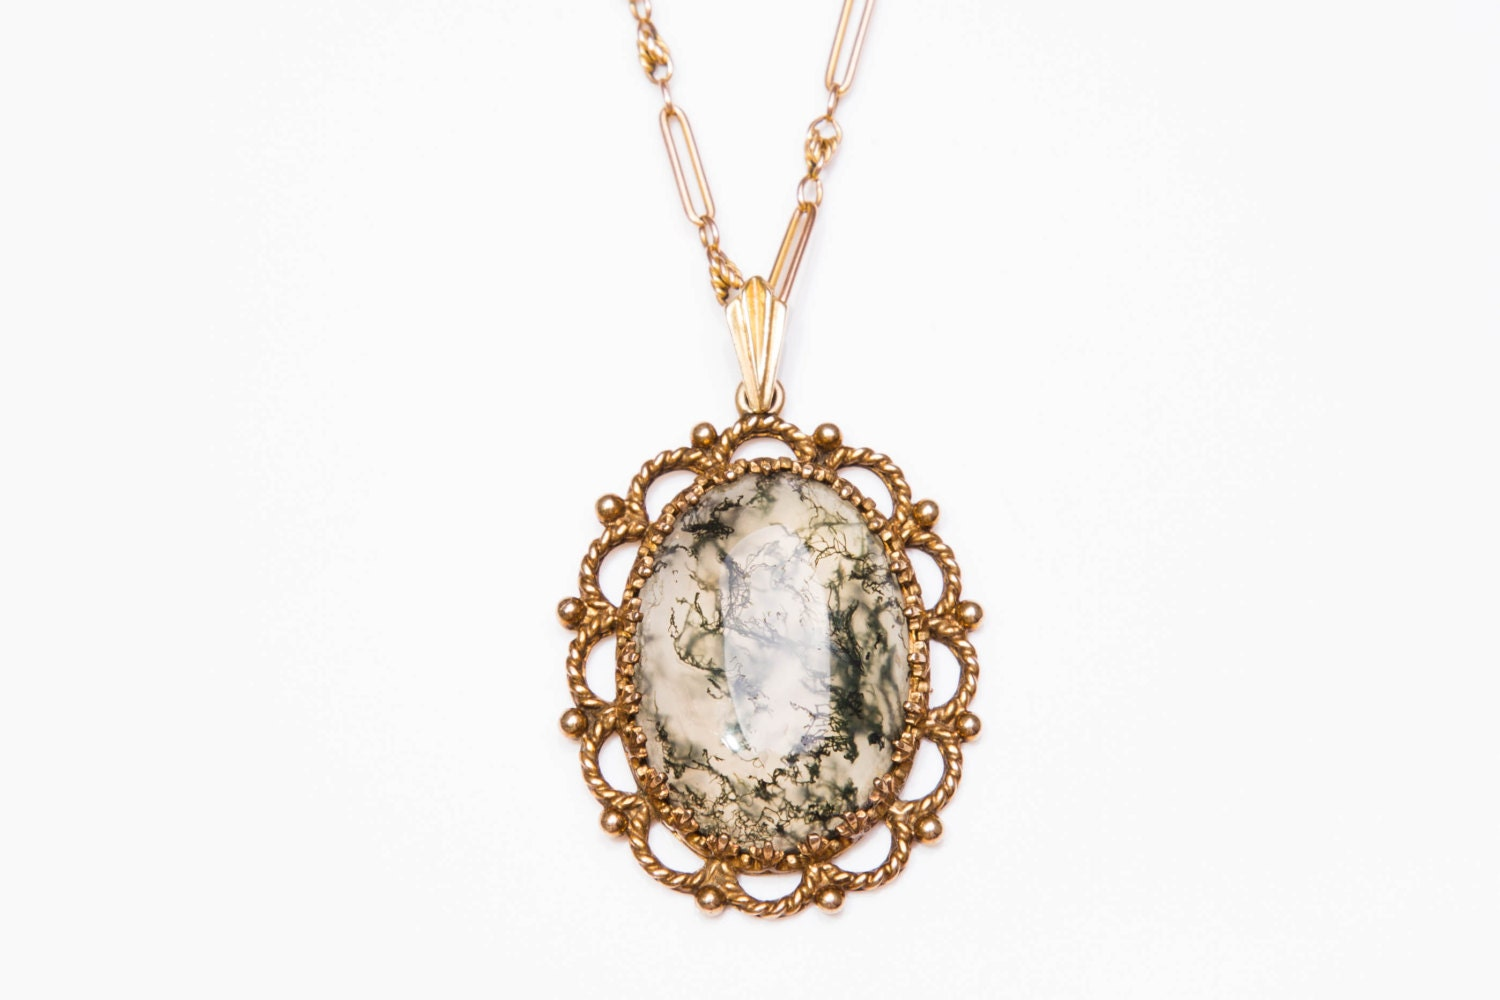 Vintage 9ct Yellow Gold & Moss Agate Pendant